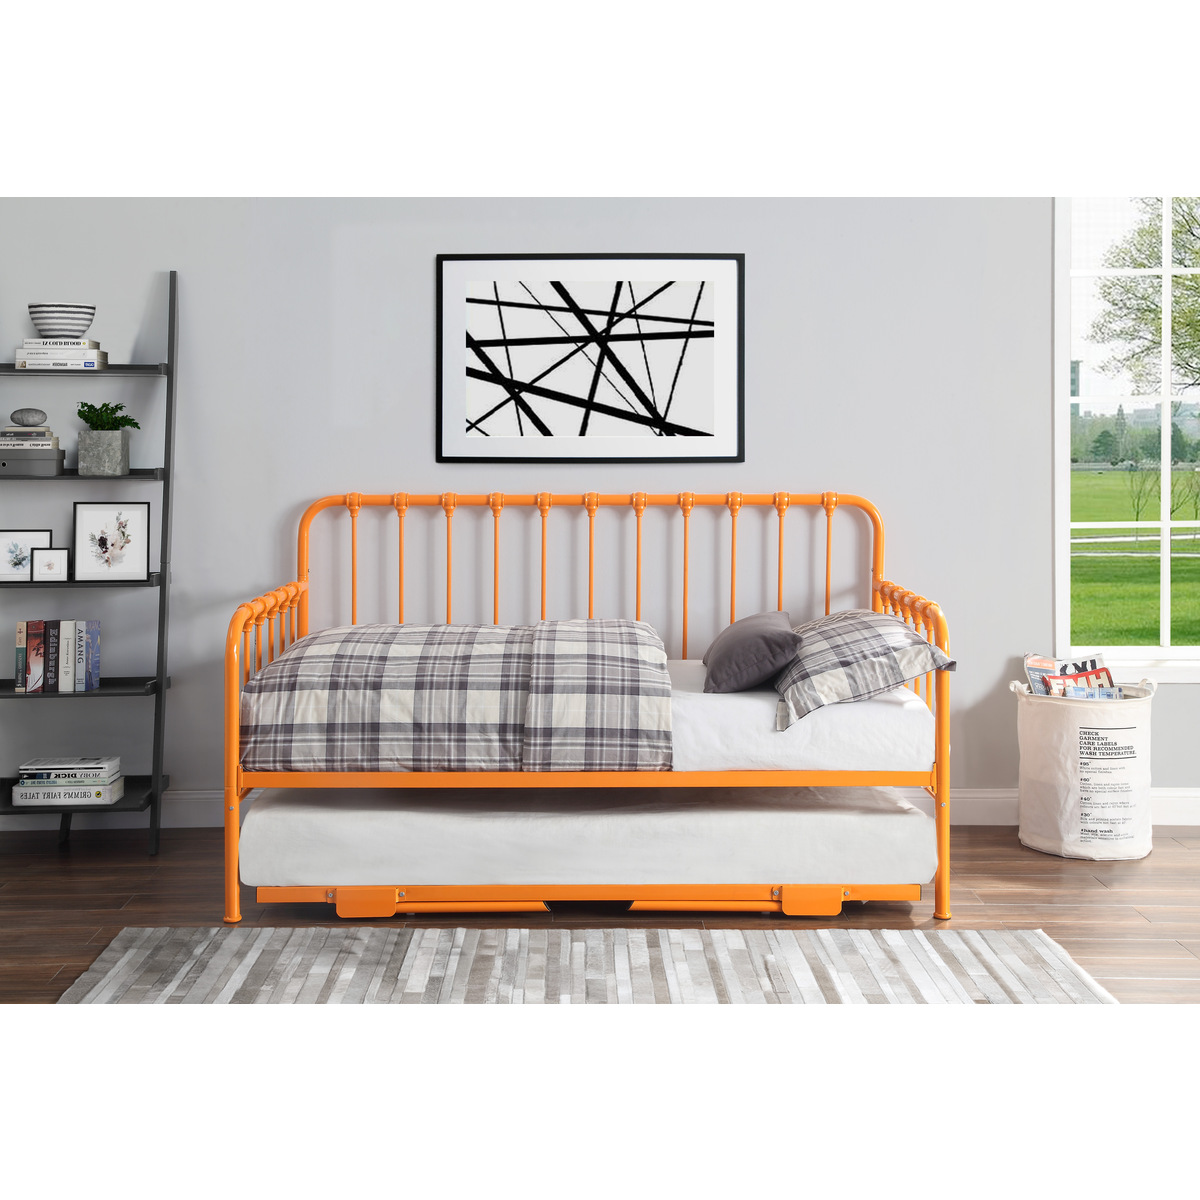 4983RN-NT DAYBED WITH LIFT-UP TRUNDLE, ORANGE